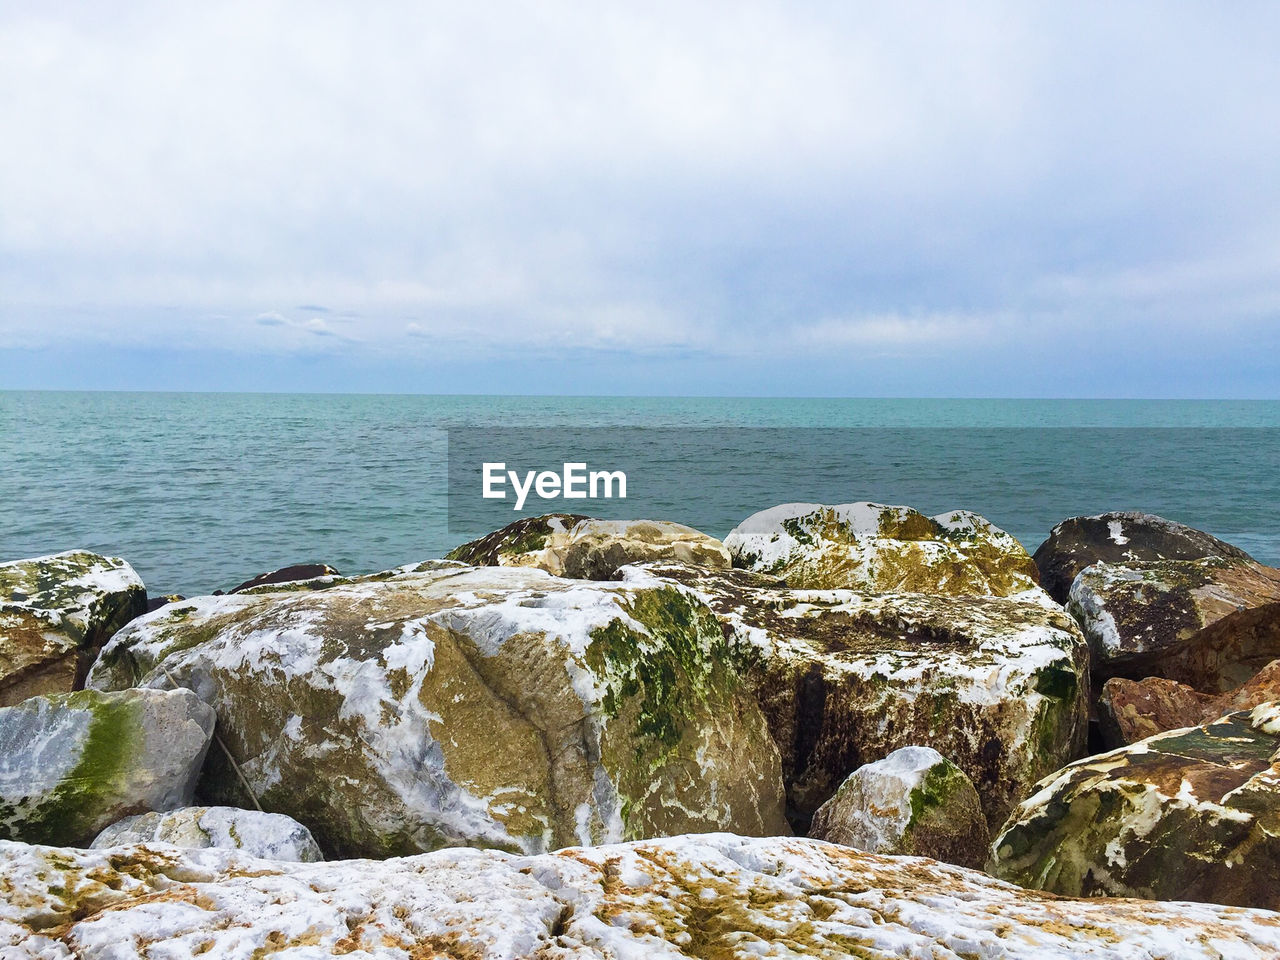 sea, horizon over water, rock - object, water, scenics, nature, tranquil scene, tranquility, beauty in nature, sky, idyllic, no people, outdoors, day, cloud - sky